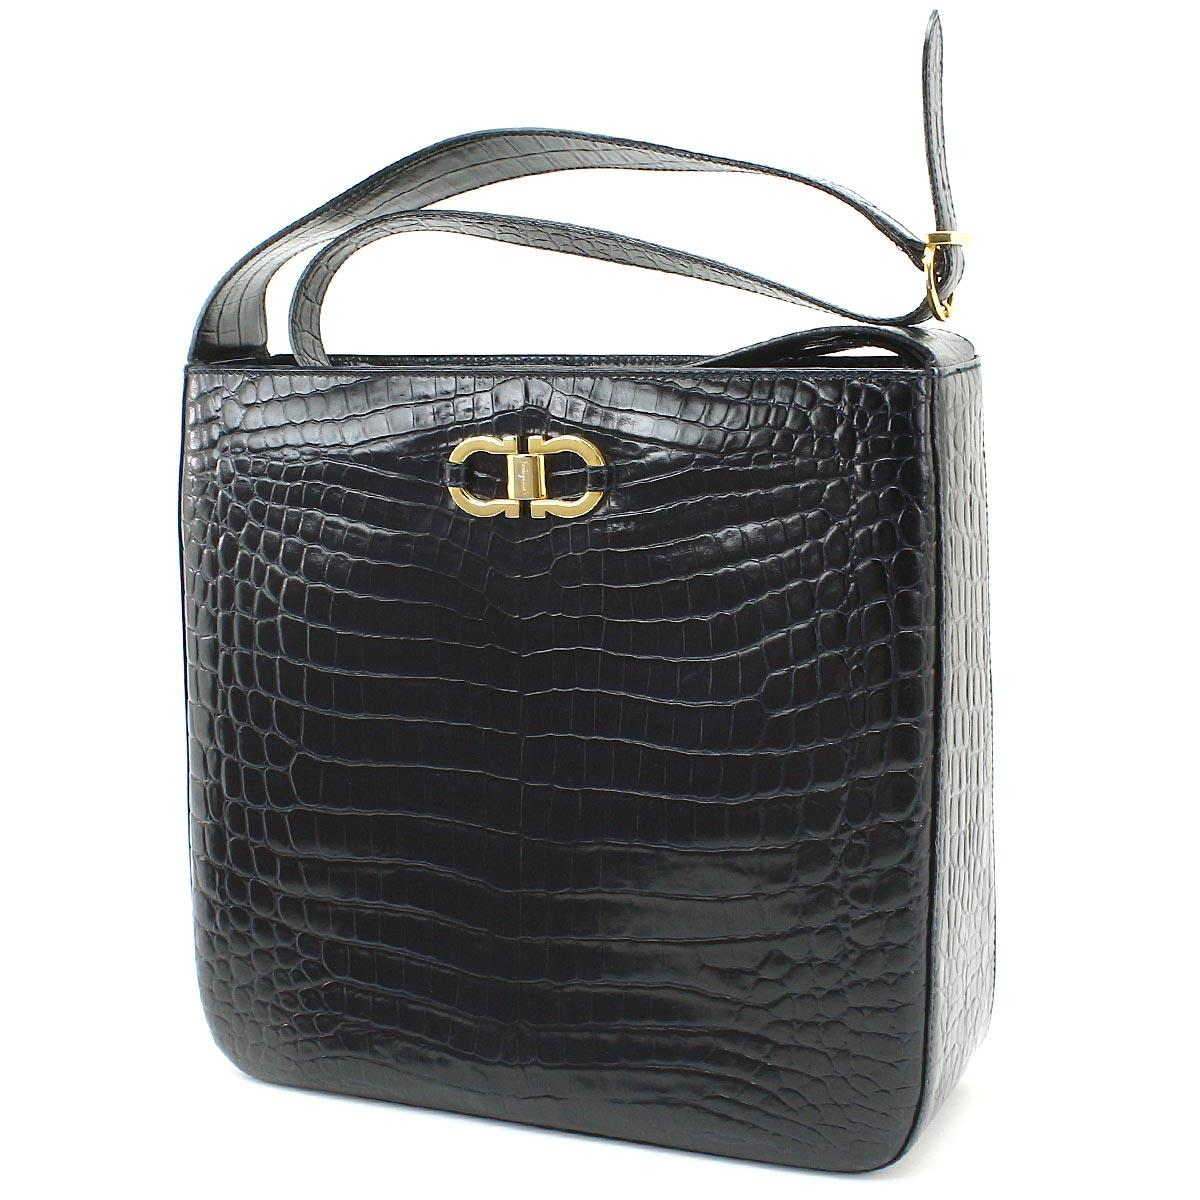 4b00946c78 Auth Salvatore Ferragamo Gancini Shoulder Bag Leather Embossed Black ...